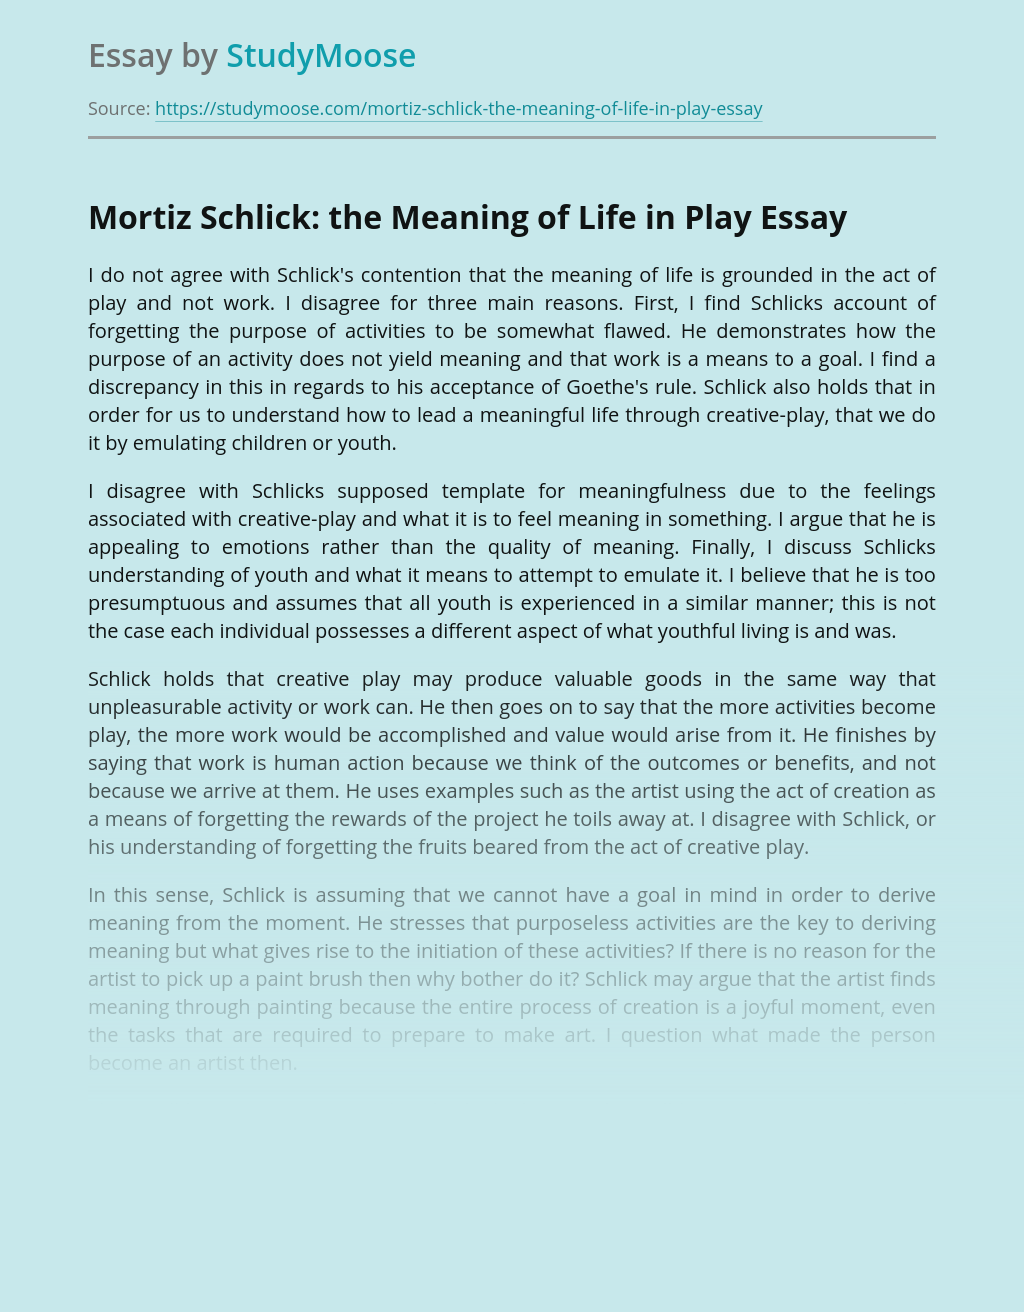 Mortiz Schlick: the Meaning of Life in Play